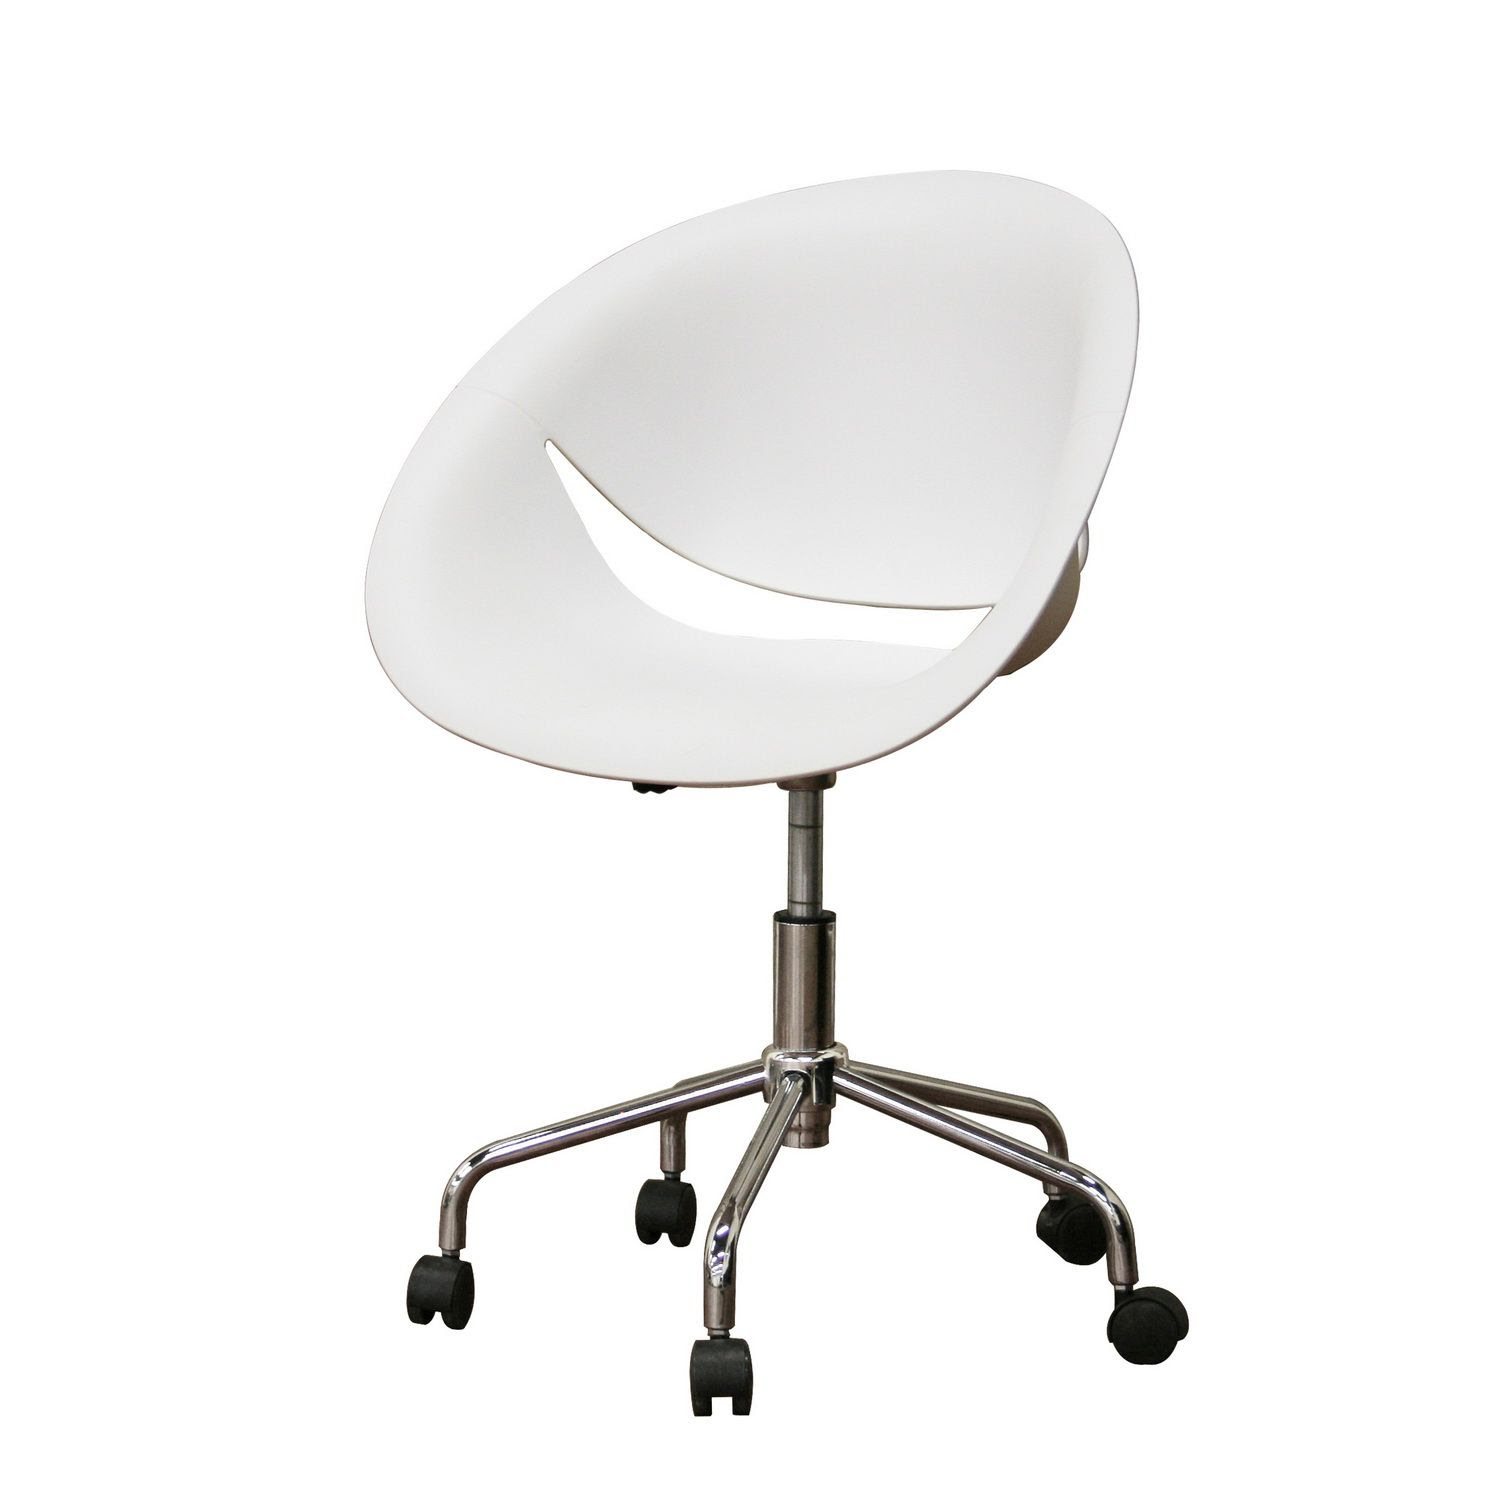 Find Baxton available in the Office & Desk Chairs section at Kmart.